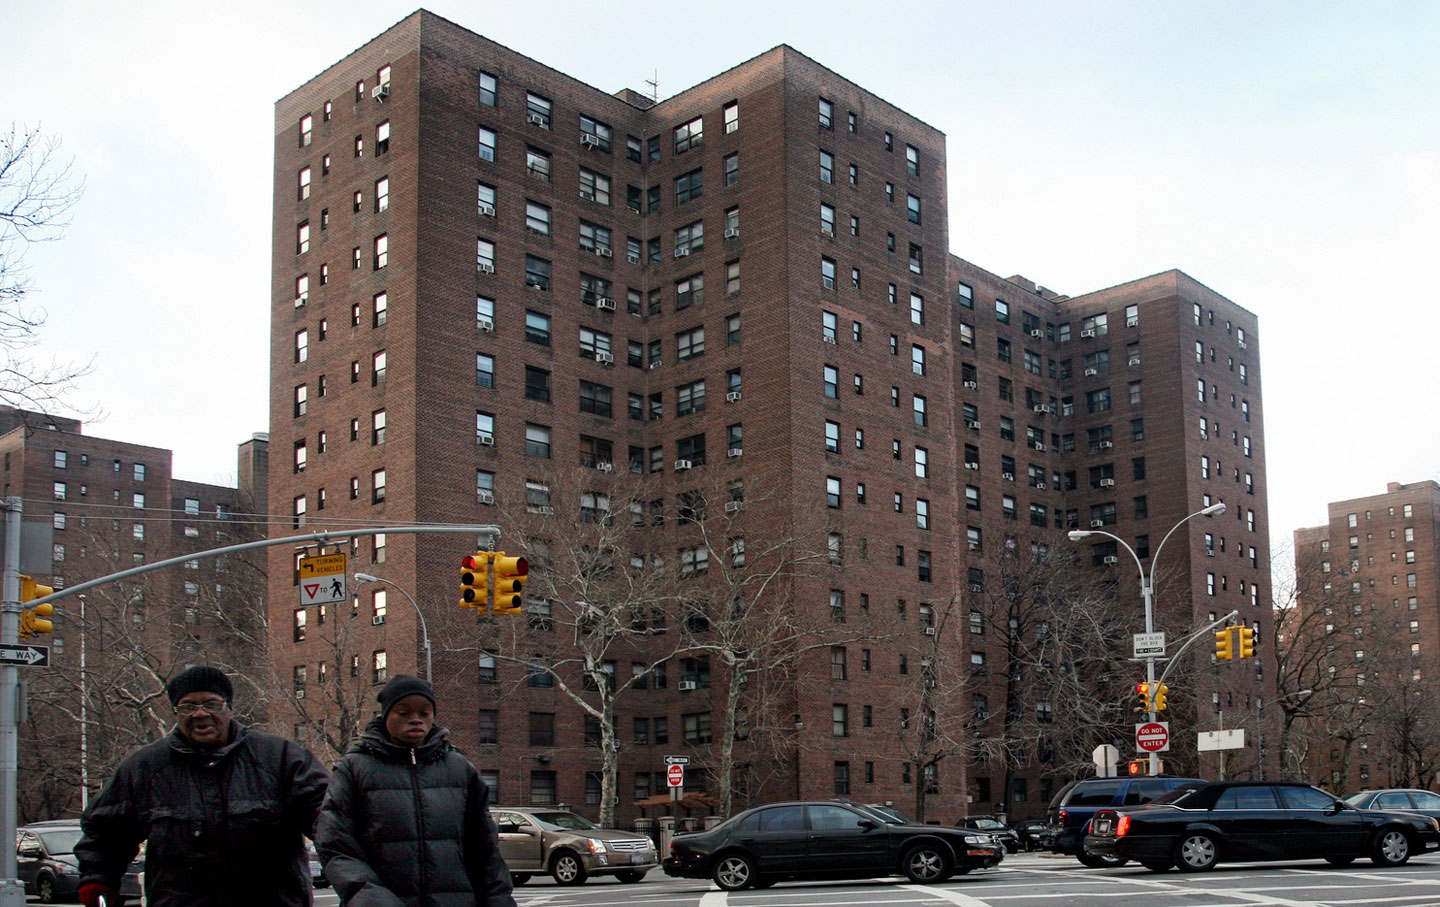 Harlem_housing_complex_ap_img